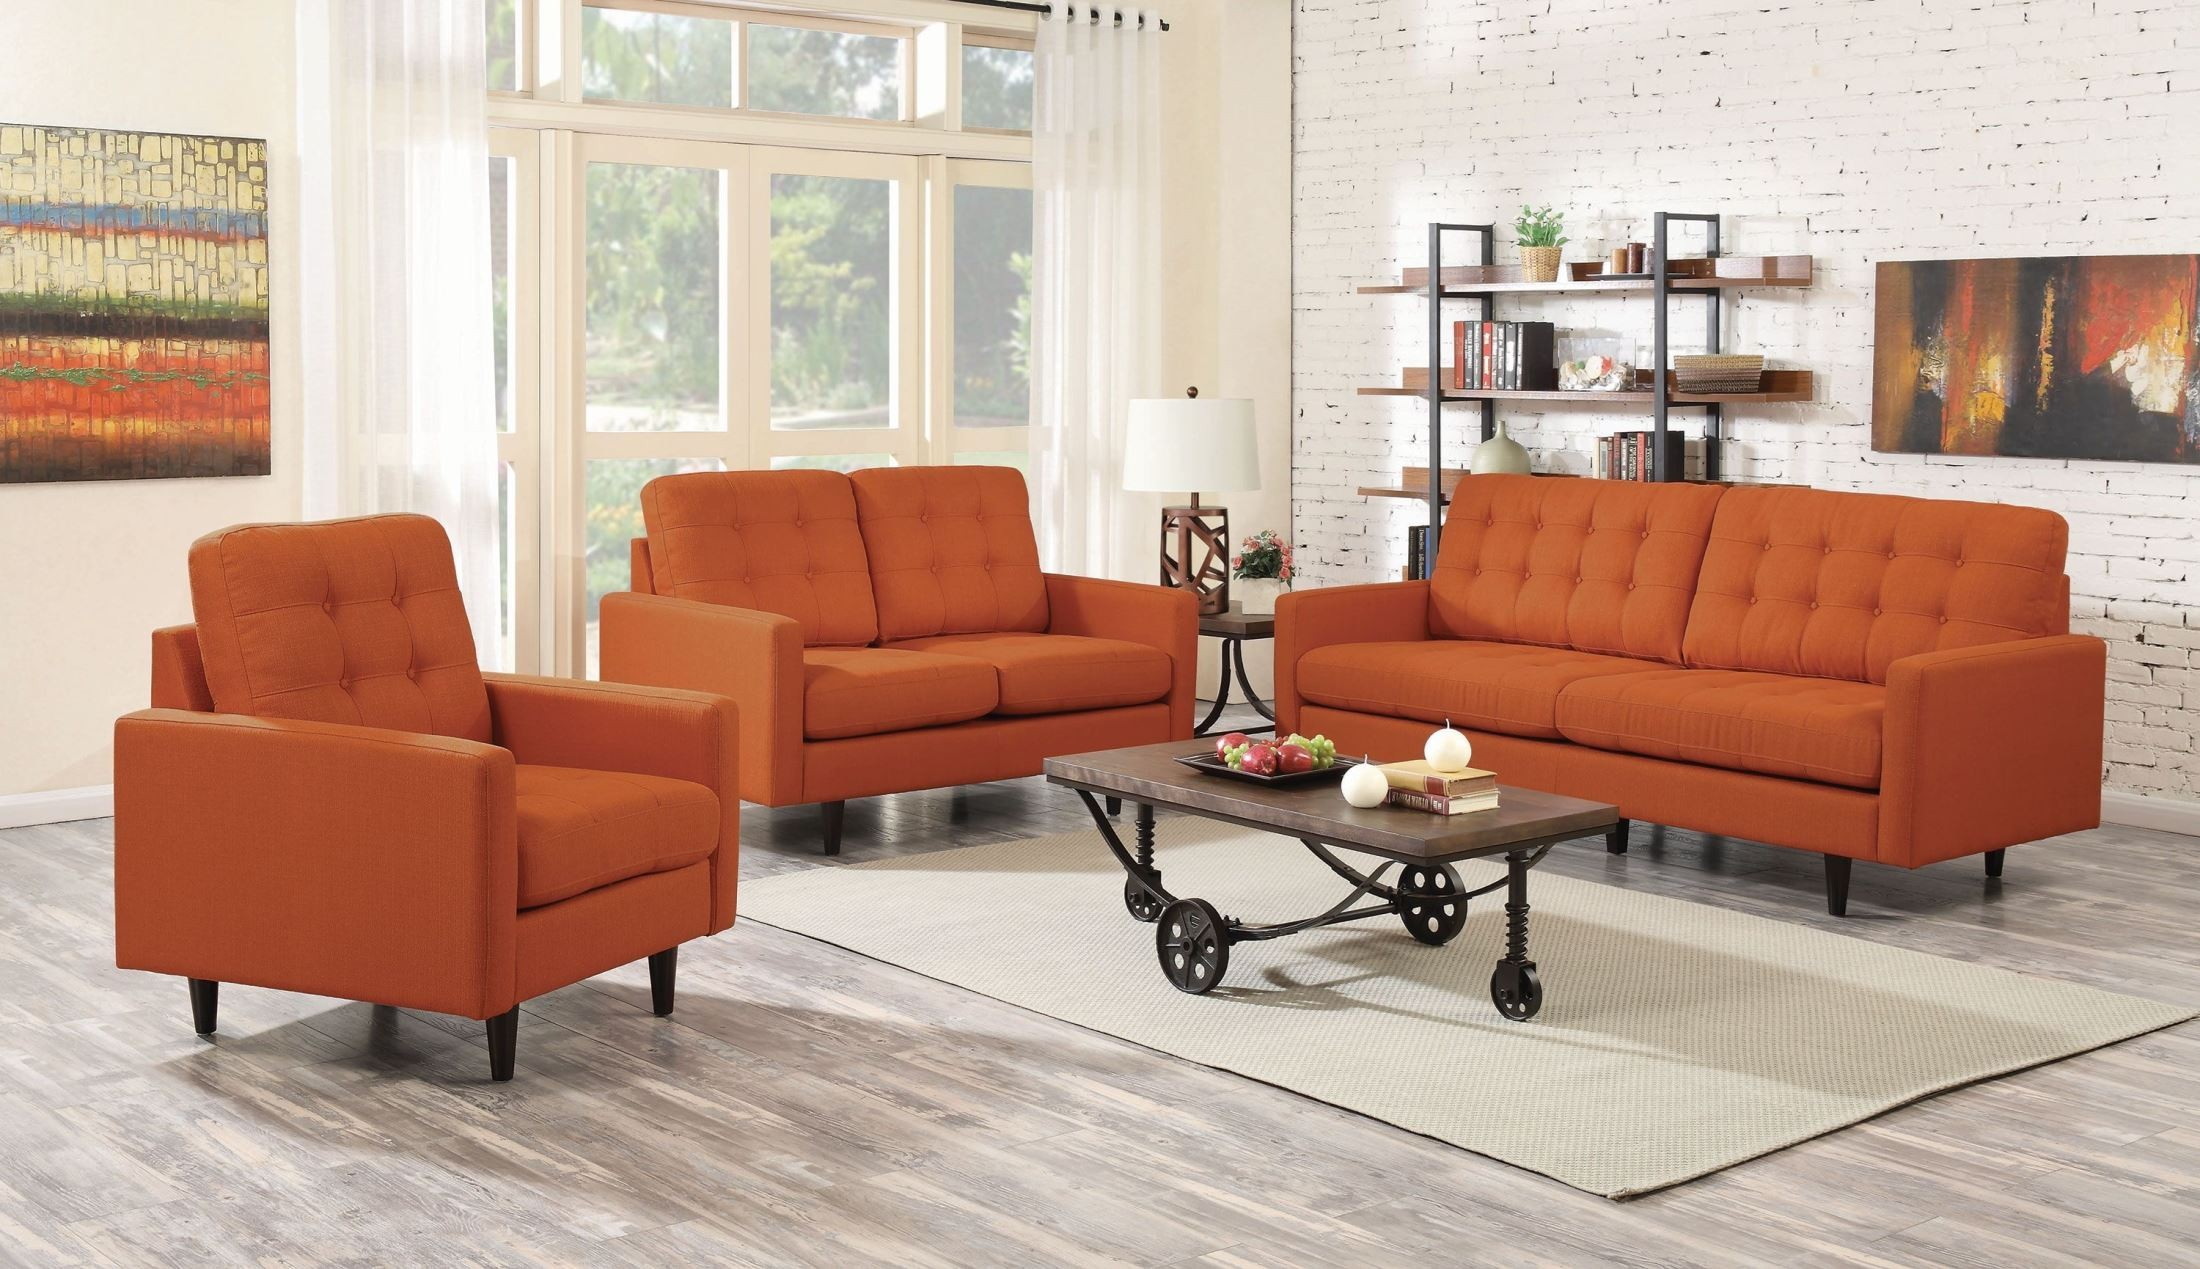 Kesson orange living room set 505371 coaster furniture for Front room furniture sets